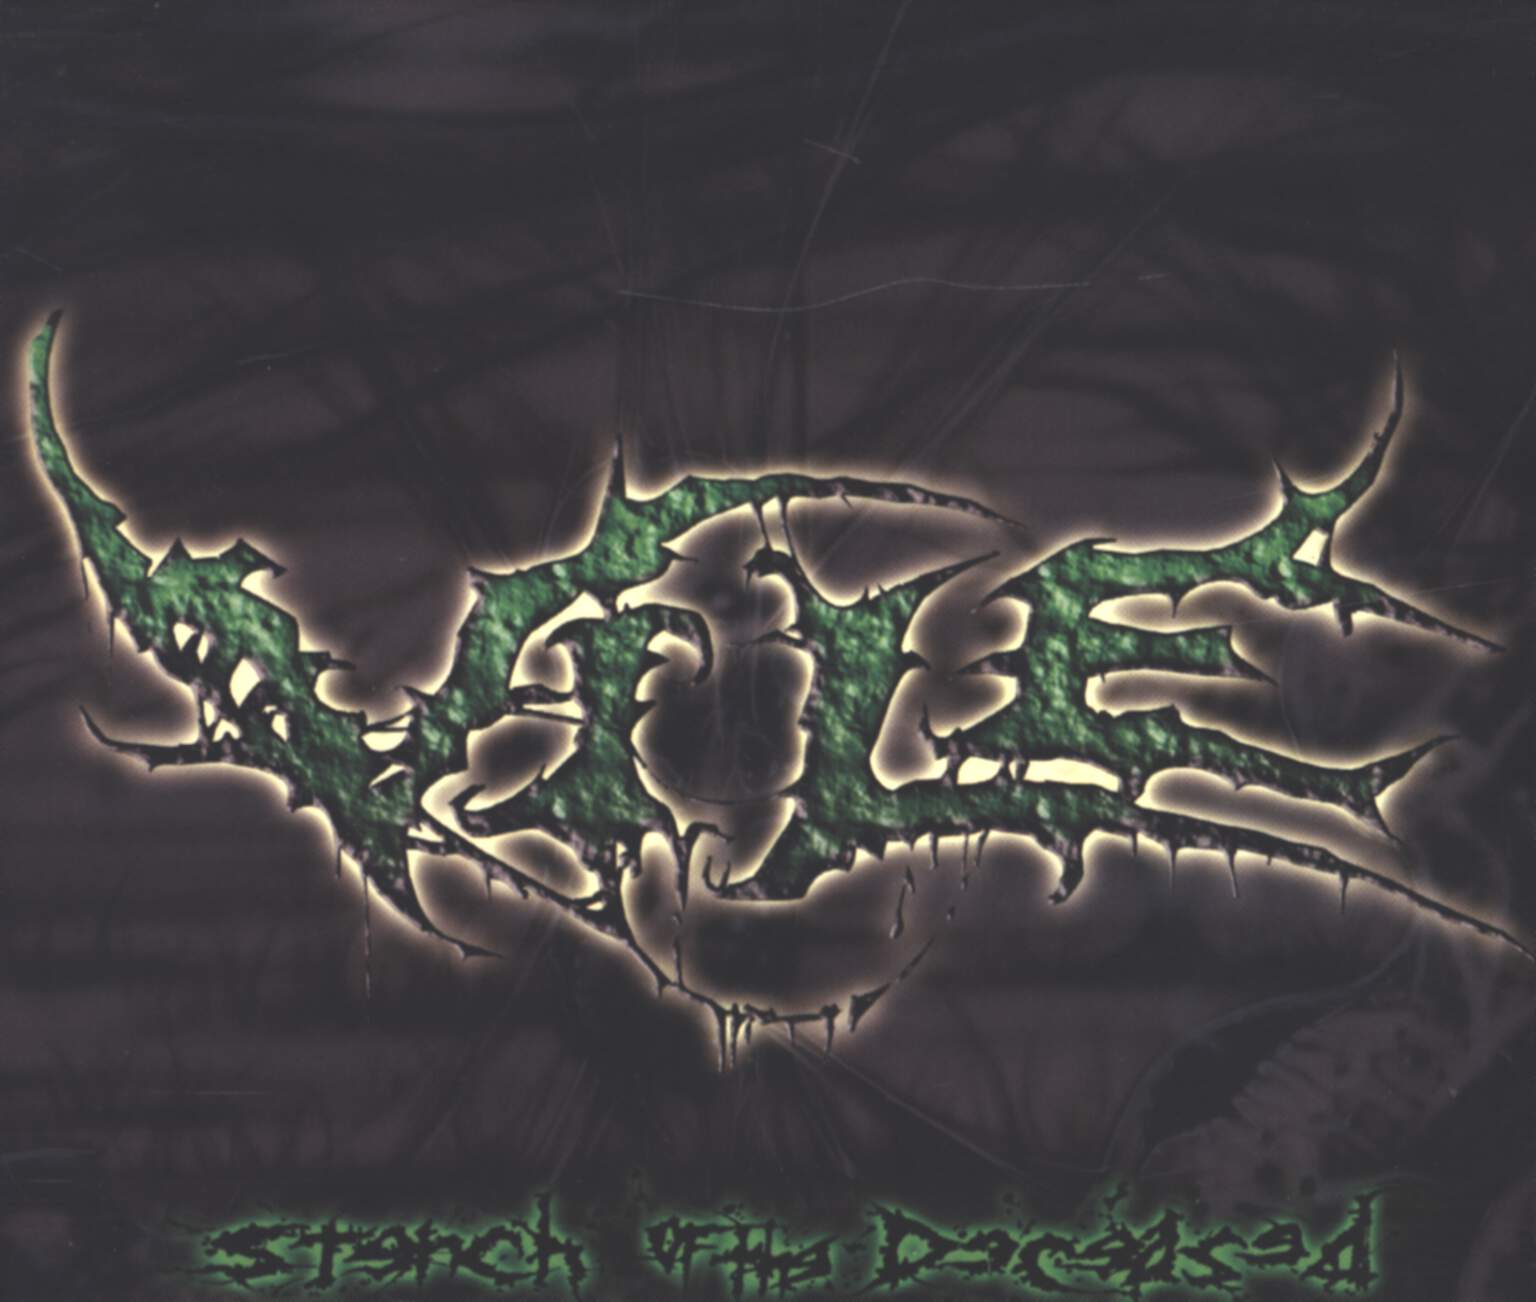 Vile: Stench Of The Deceased, CD